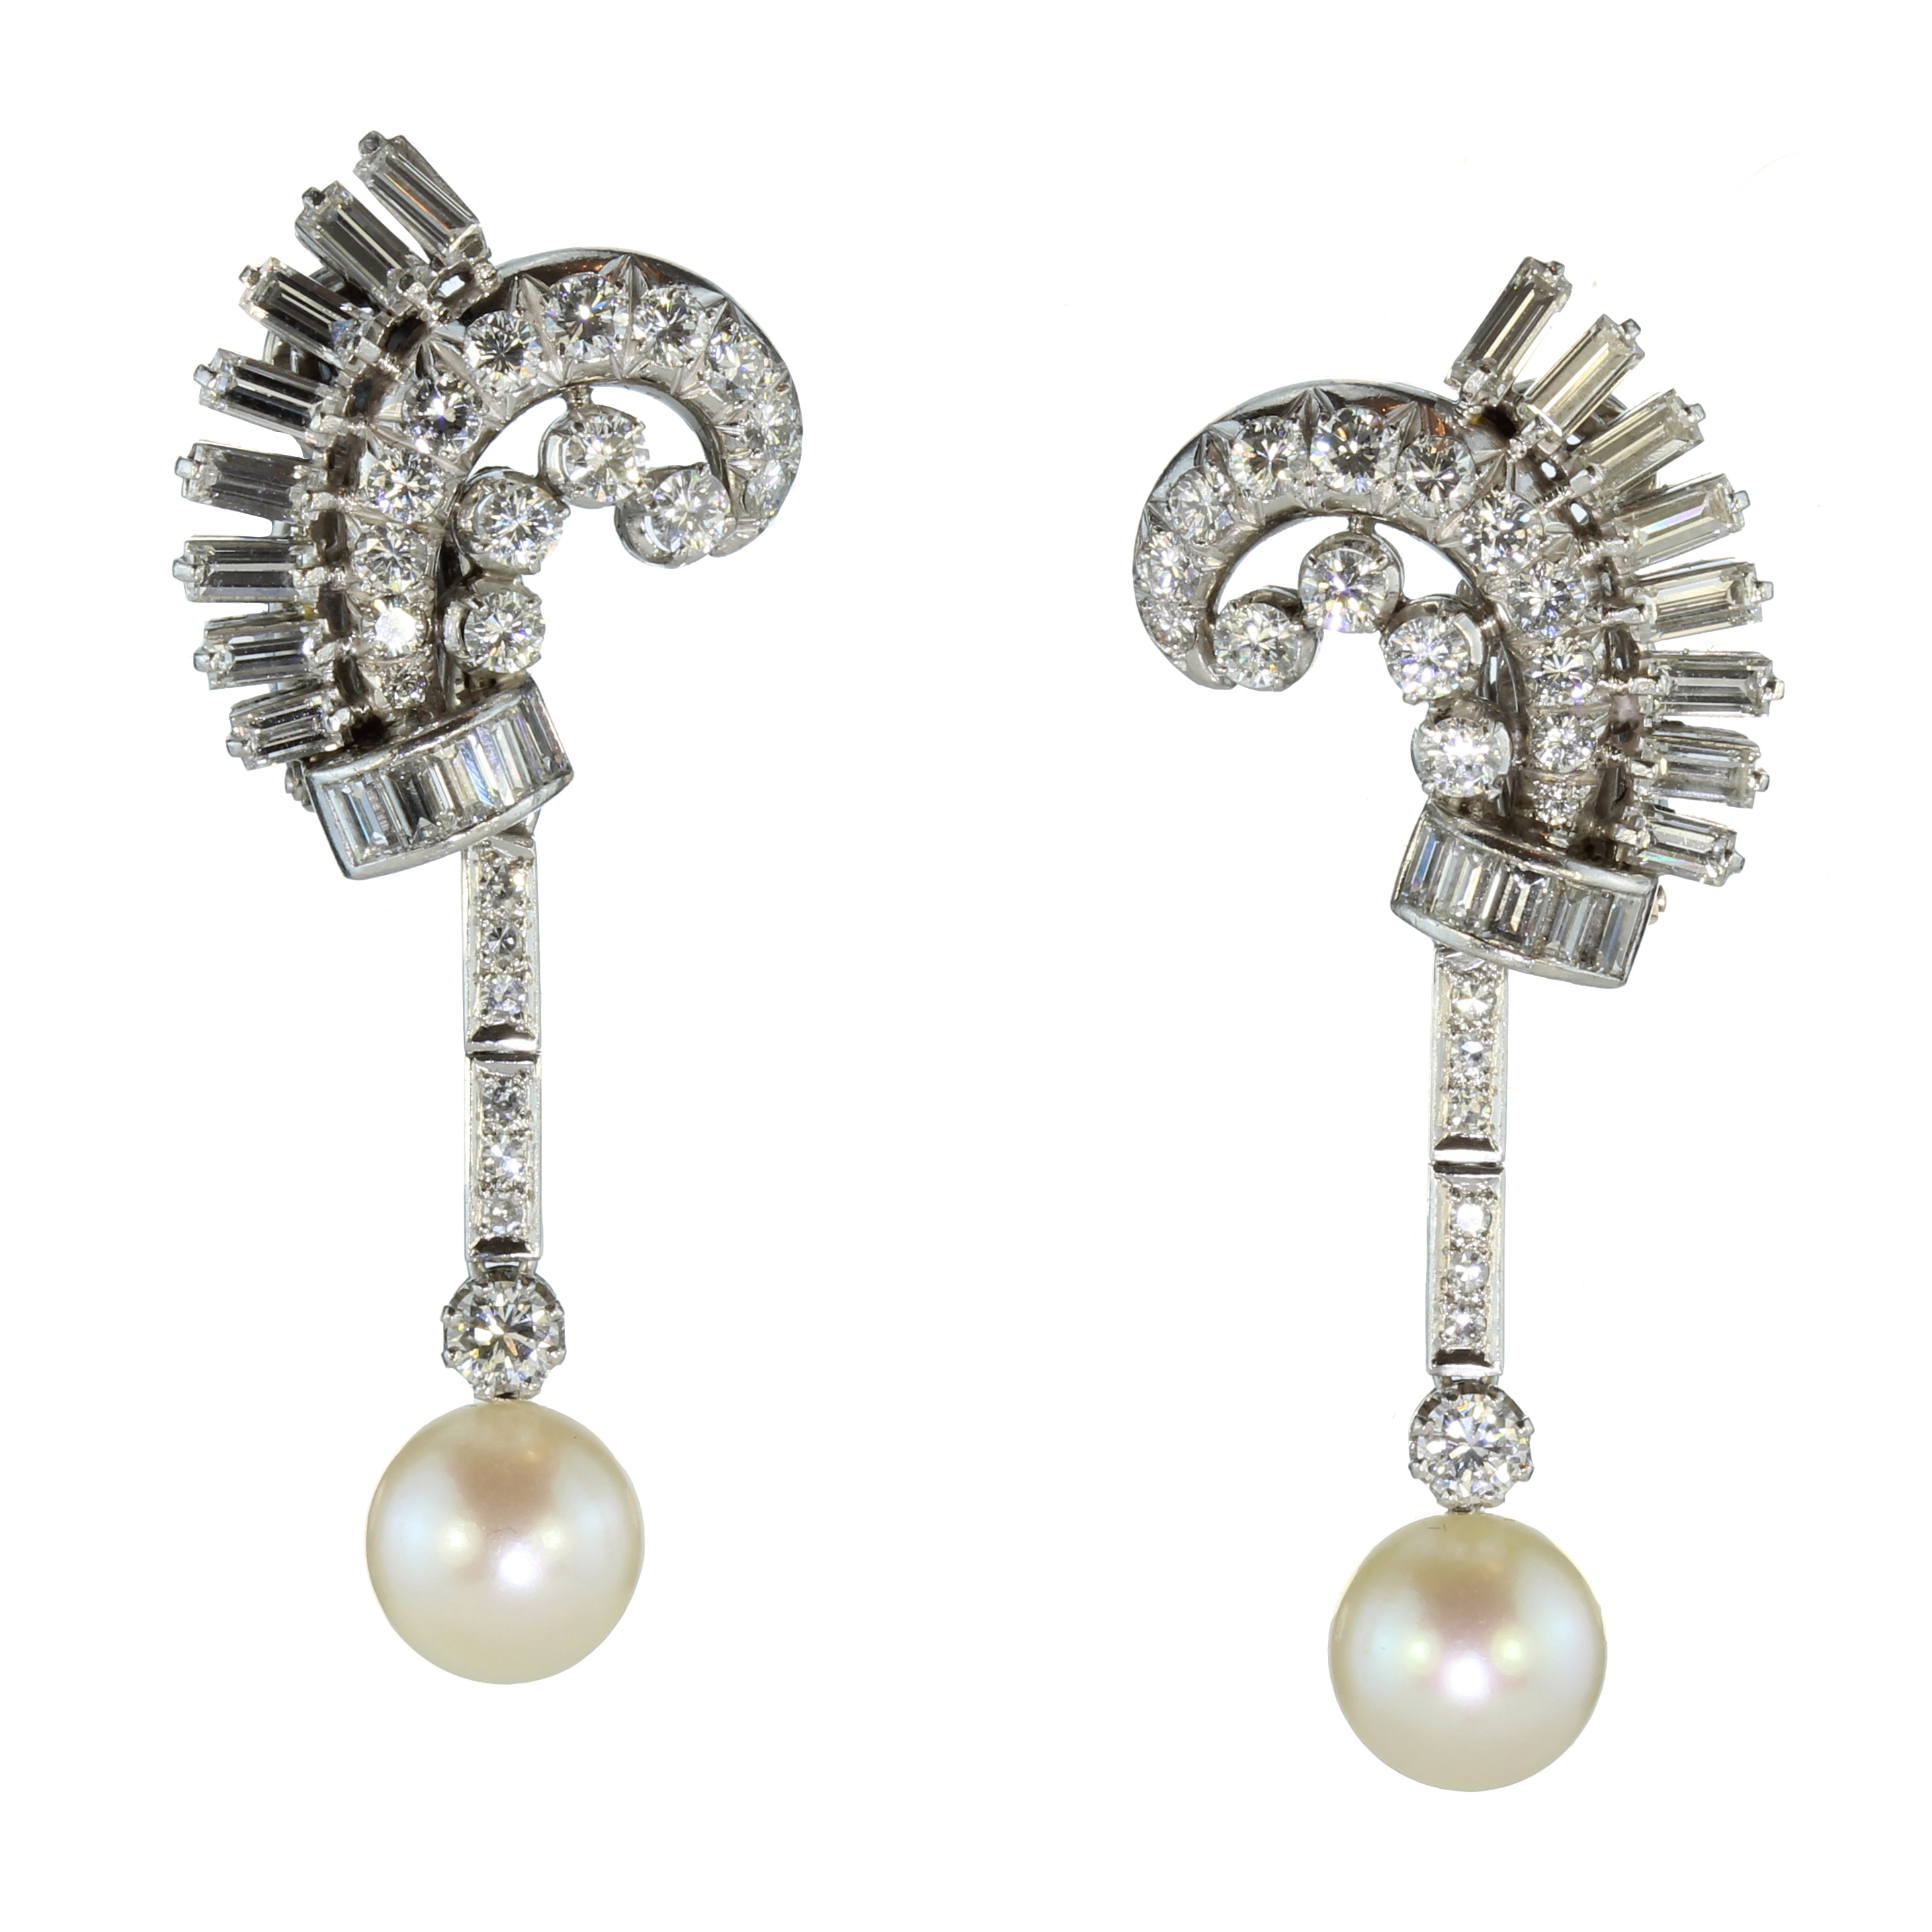 Los 26 - A pair of French diamond and pearl cocktail earrings in platinum each designed as a scrolling